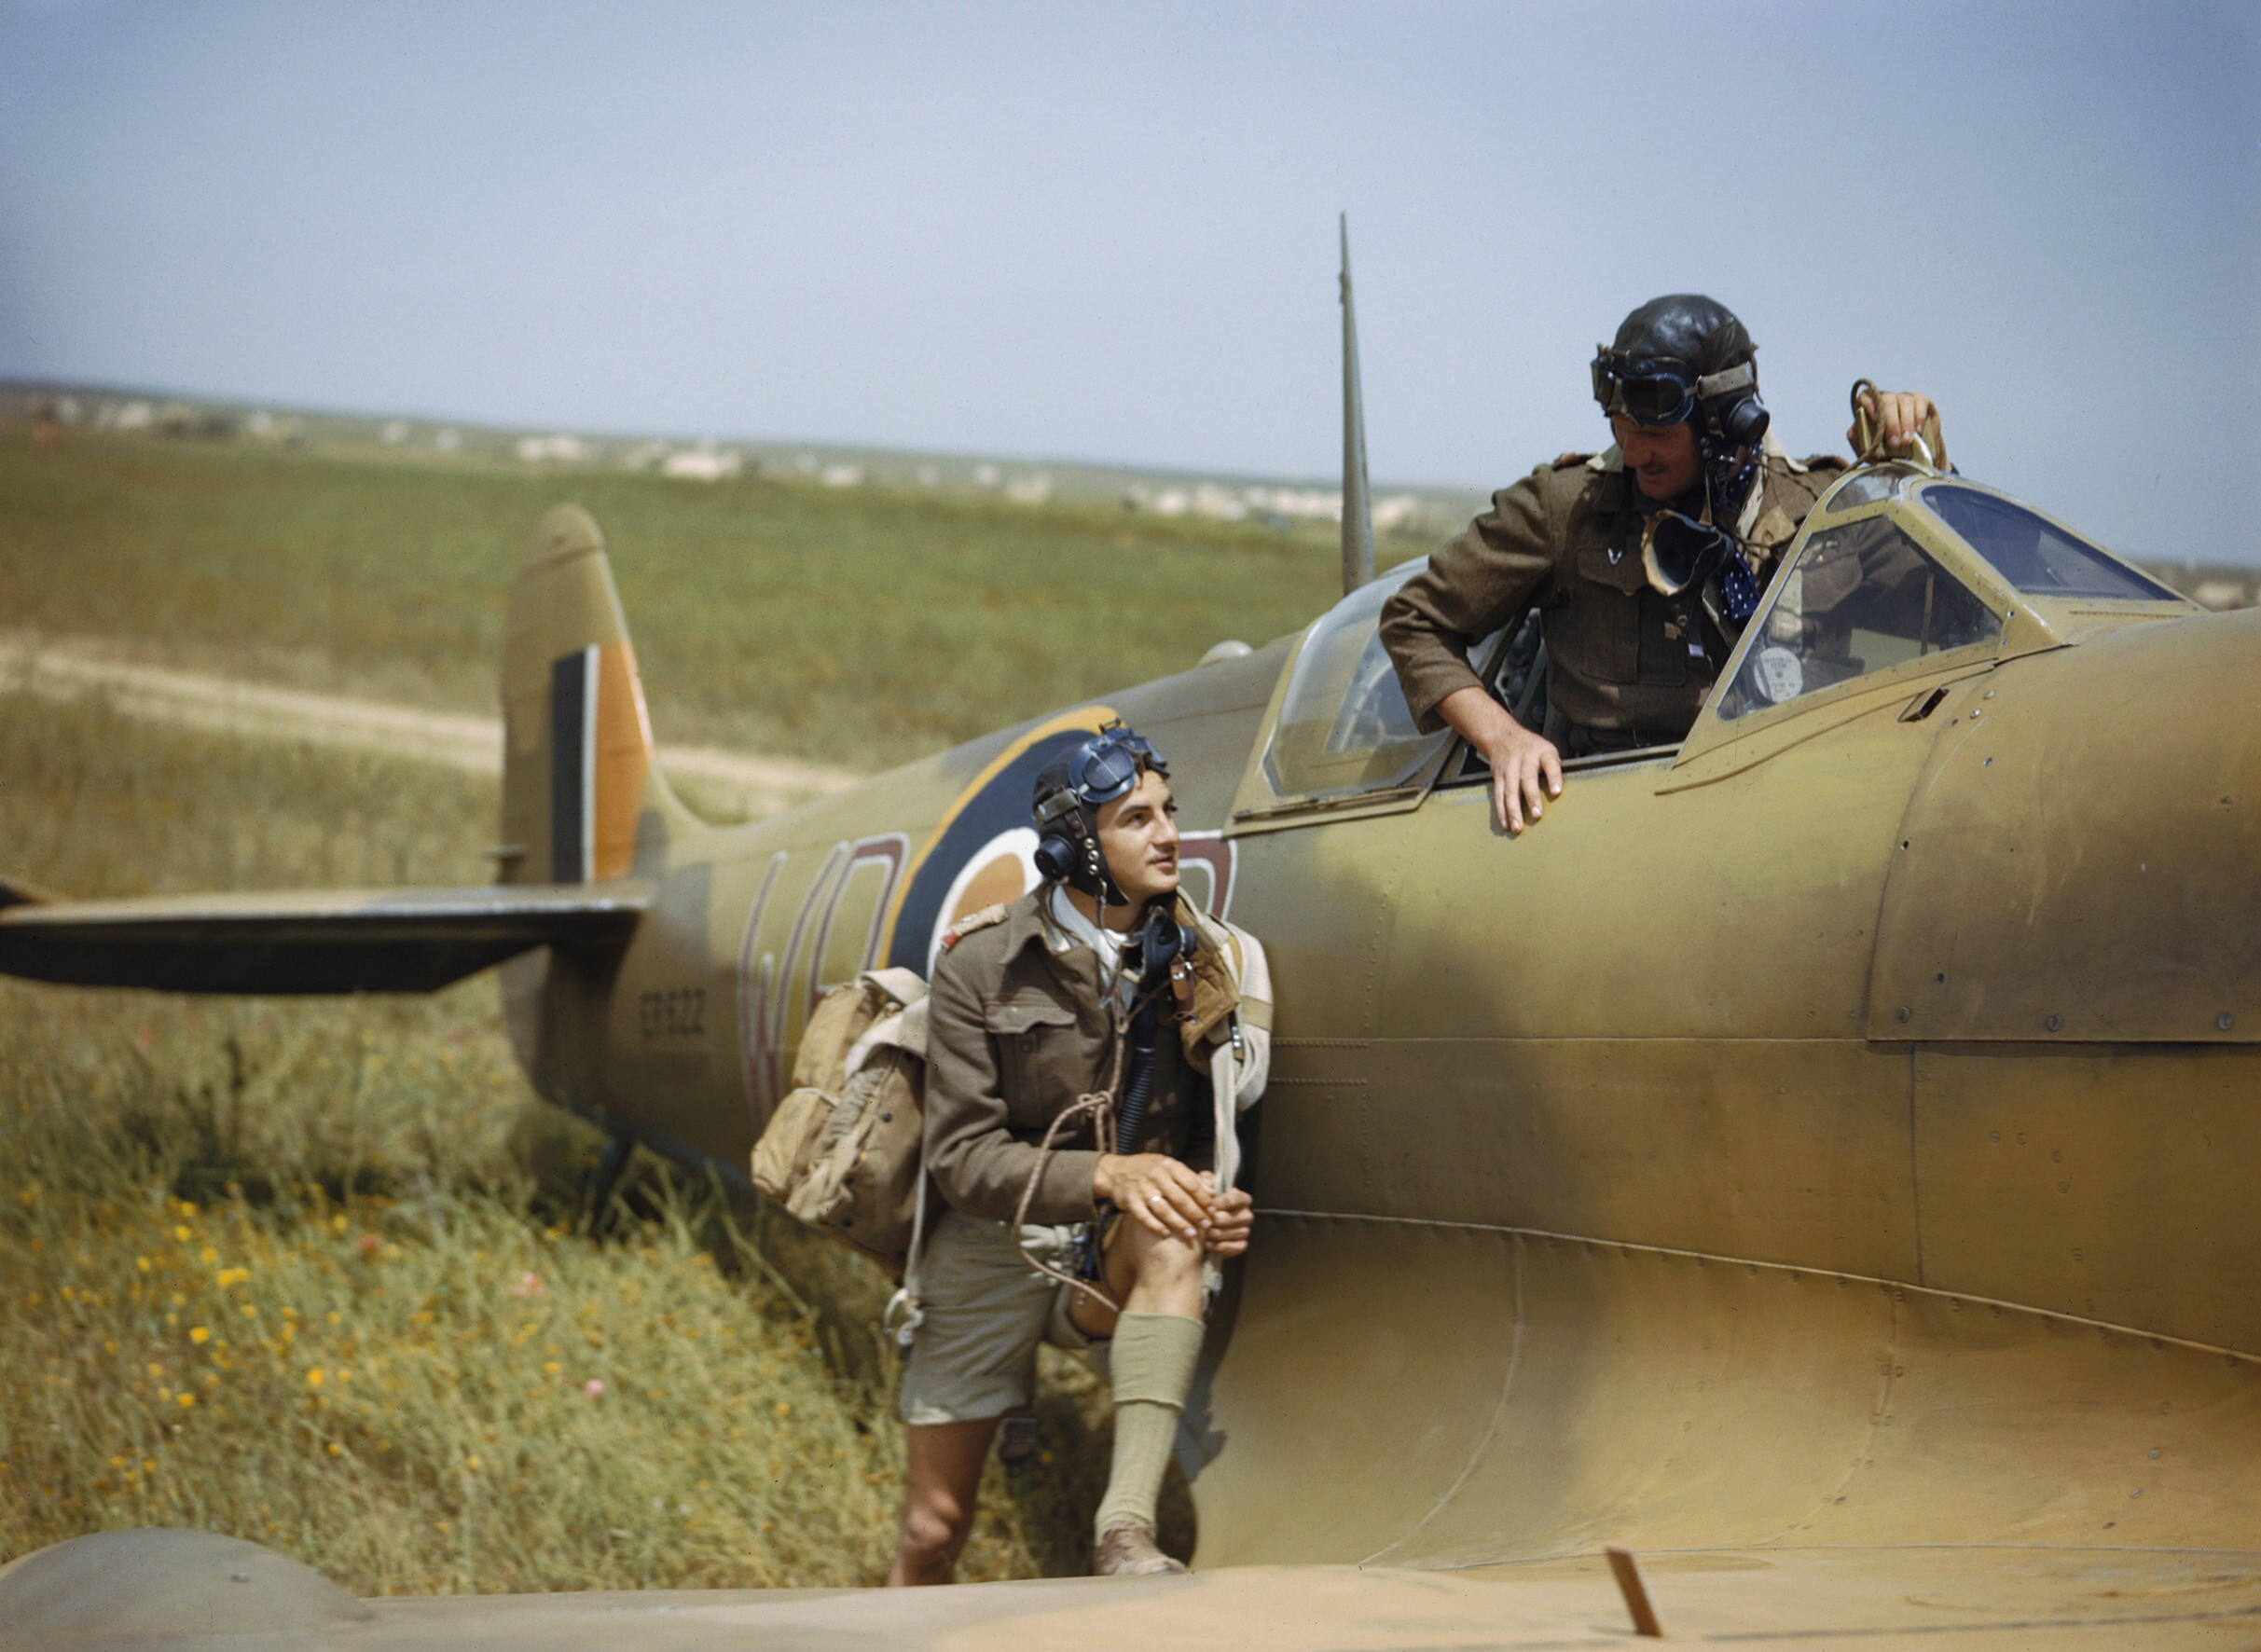 File:Supermarine Spitfire pilots of No. 40 Squadron, South ...